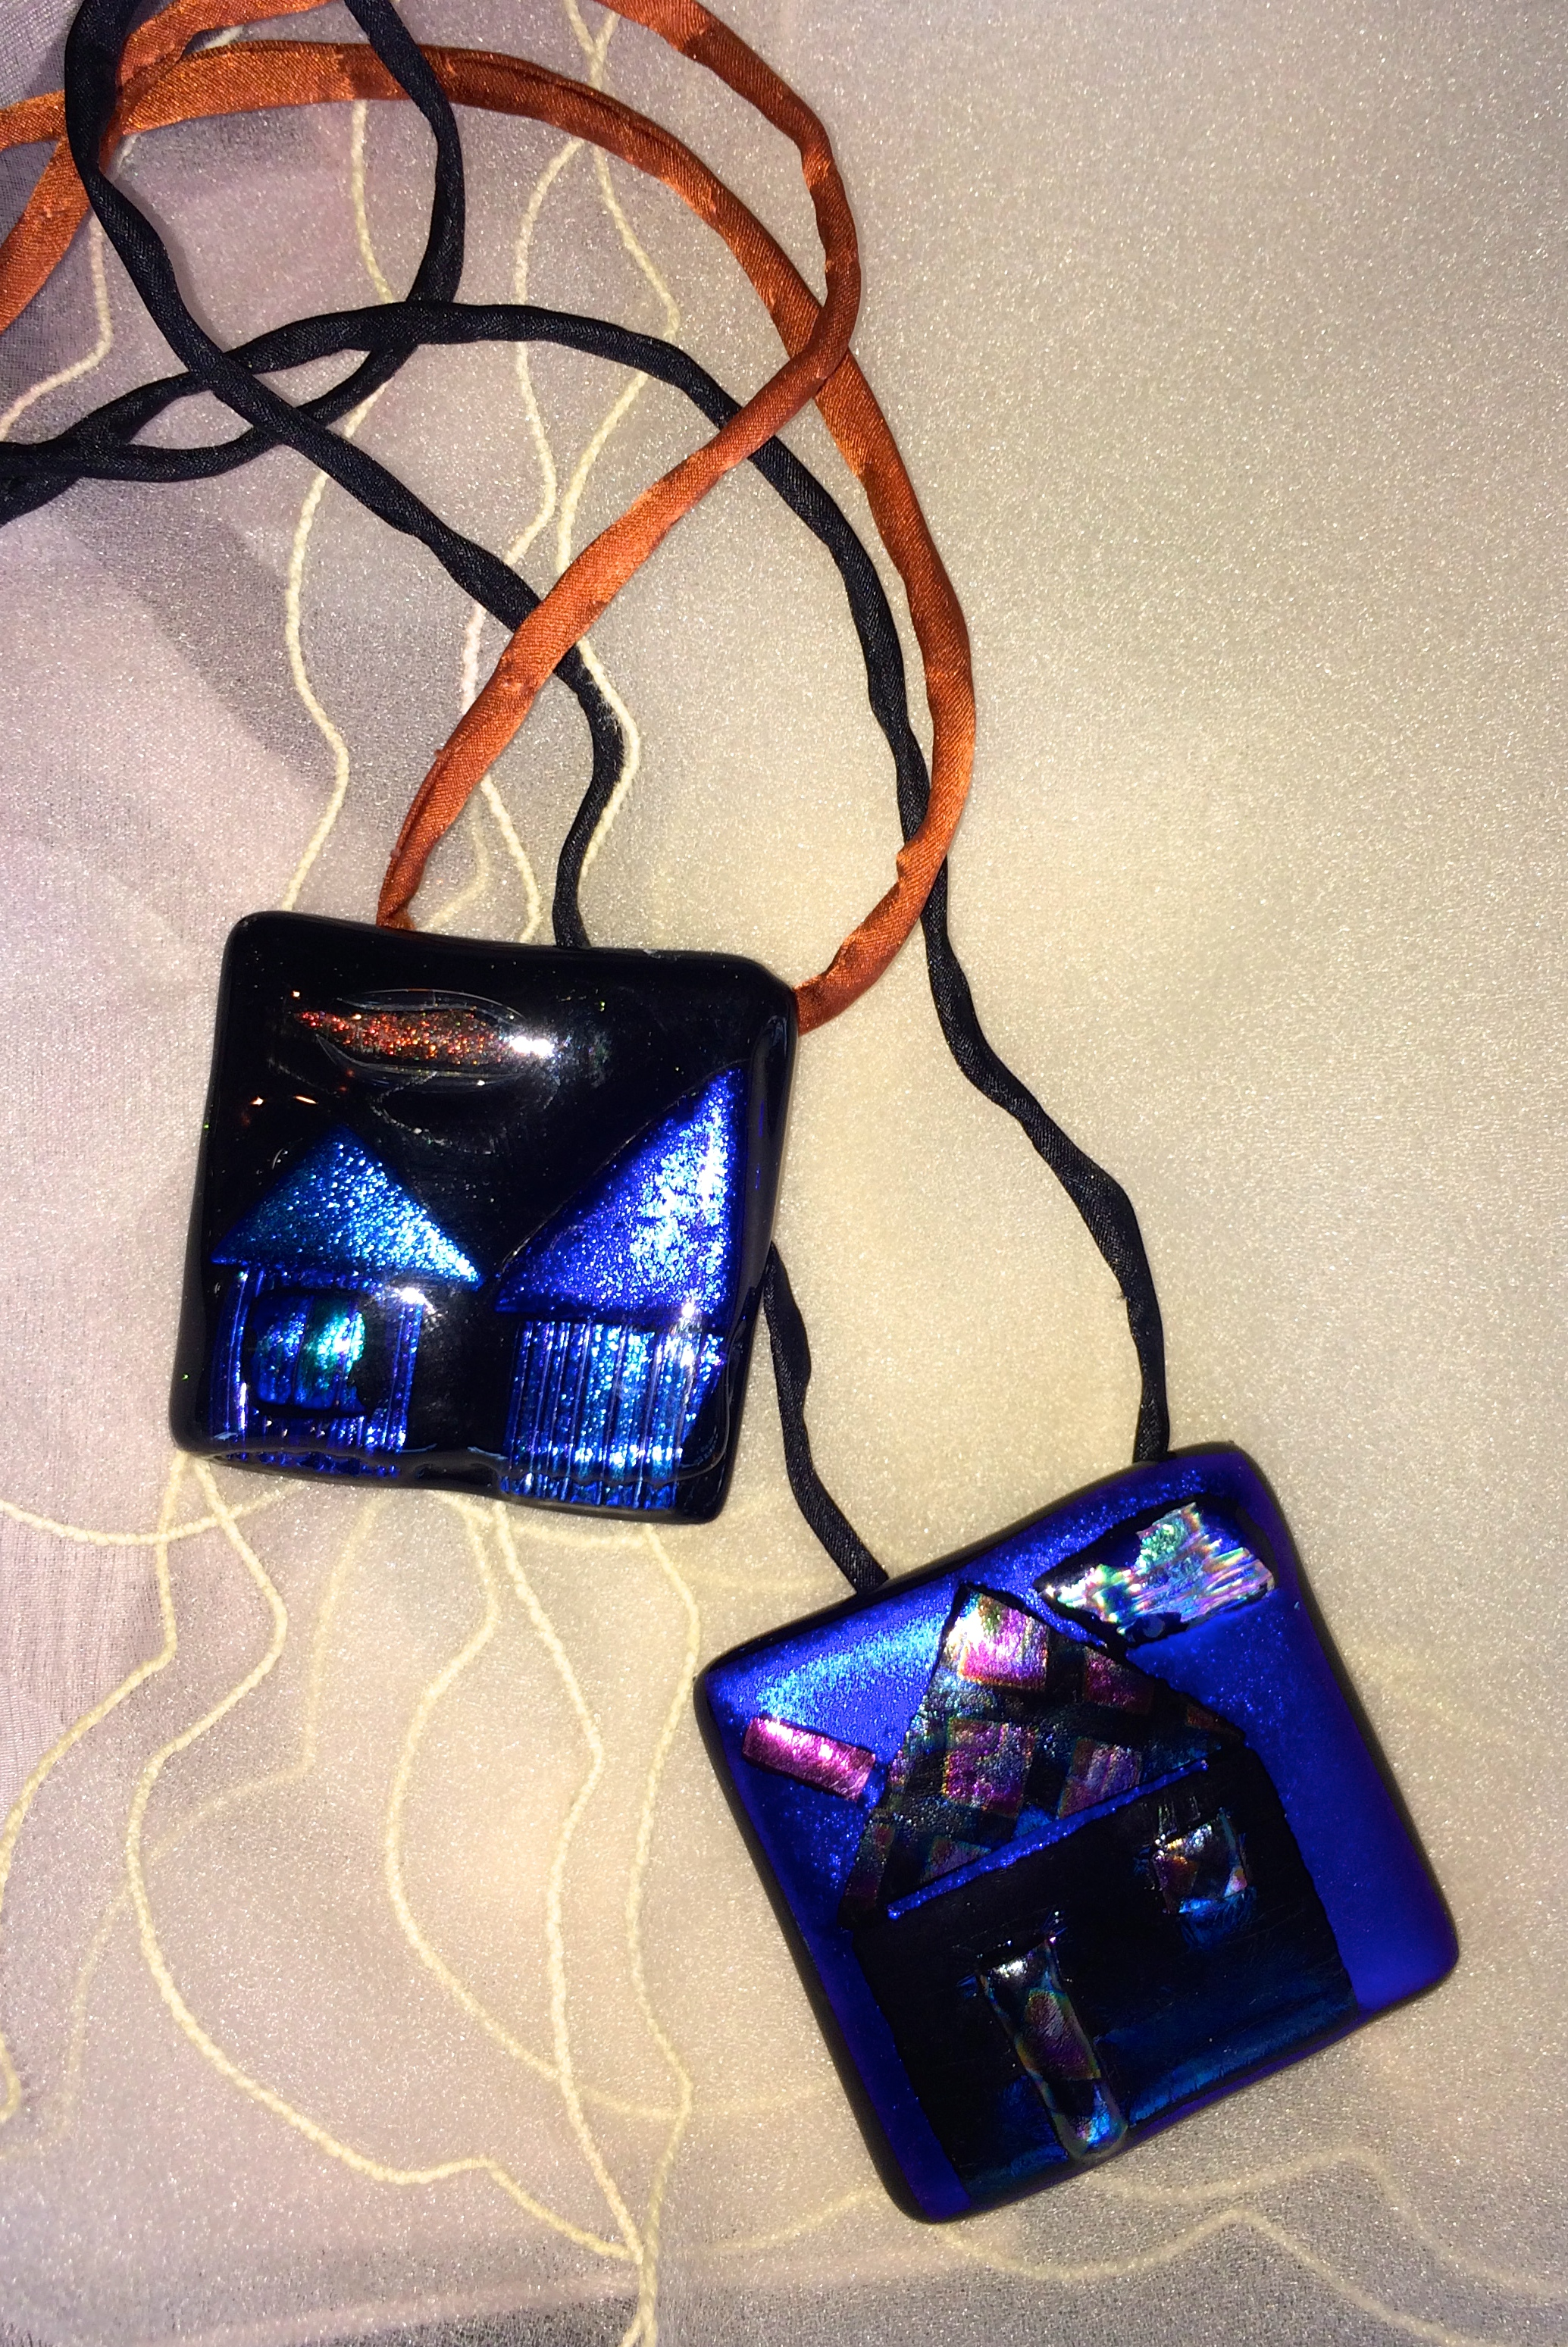 Claire enjoys donating work to charitable causes and supports homeless children with the sales of her glass house pendants.